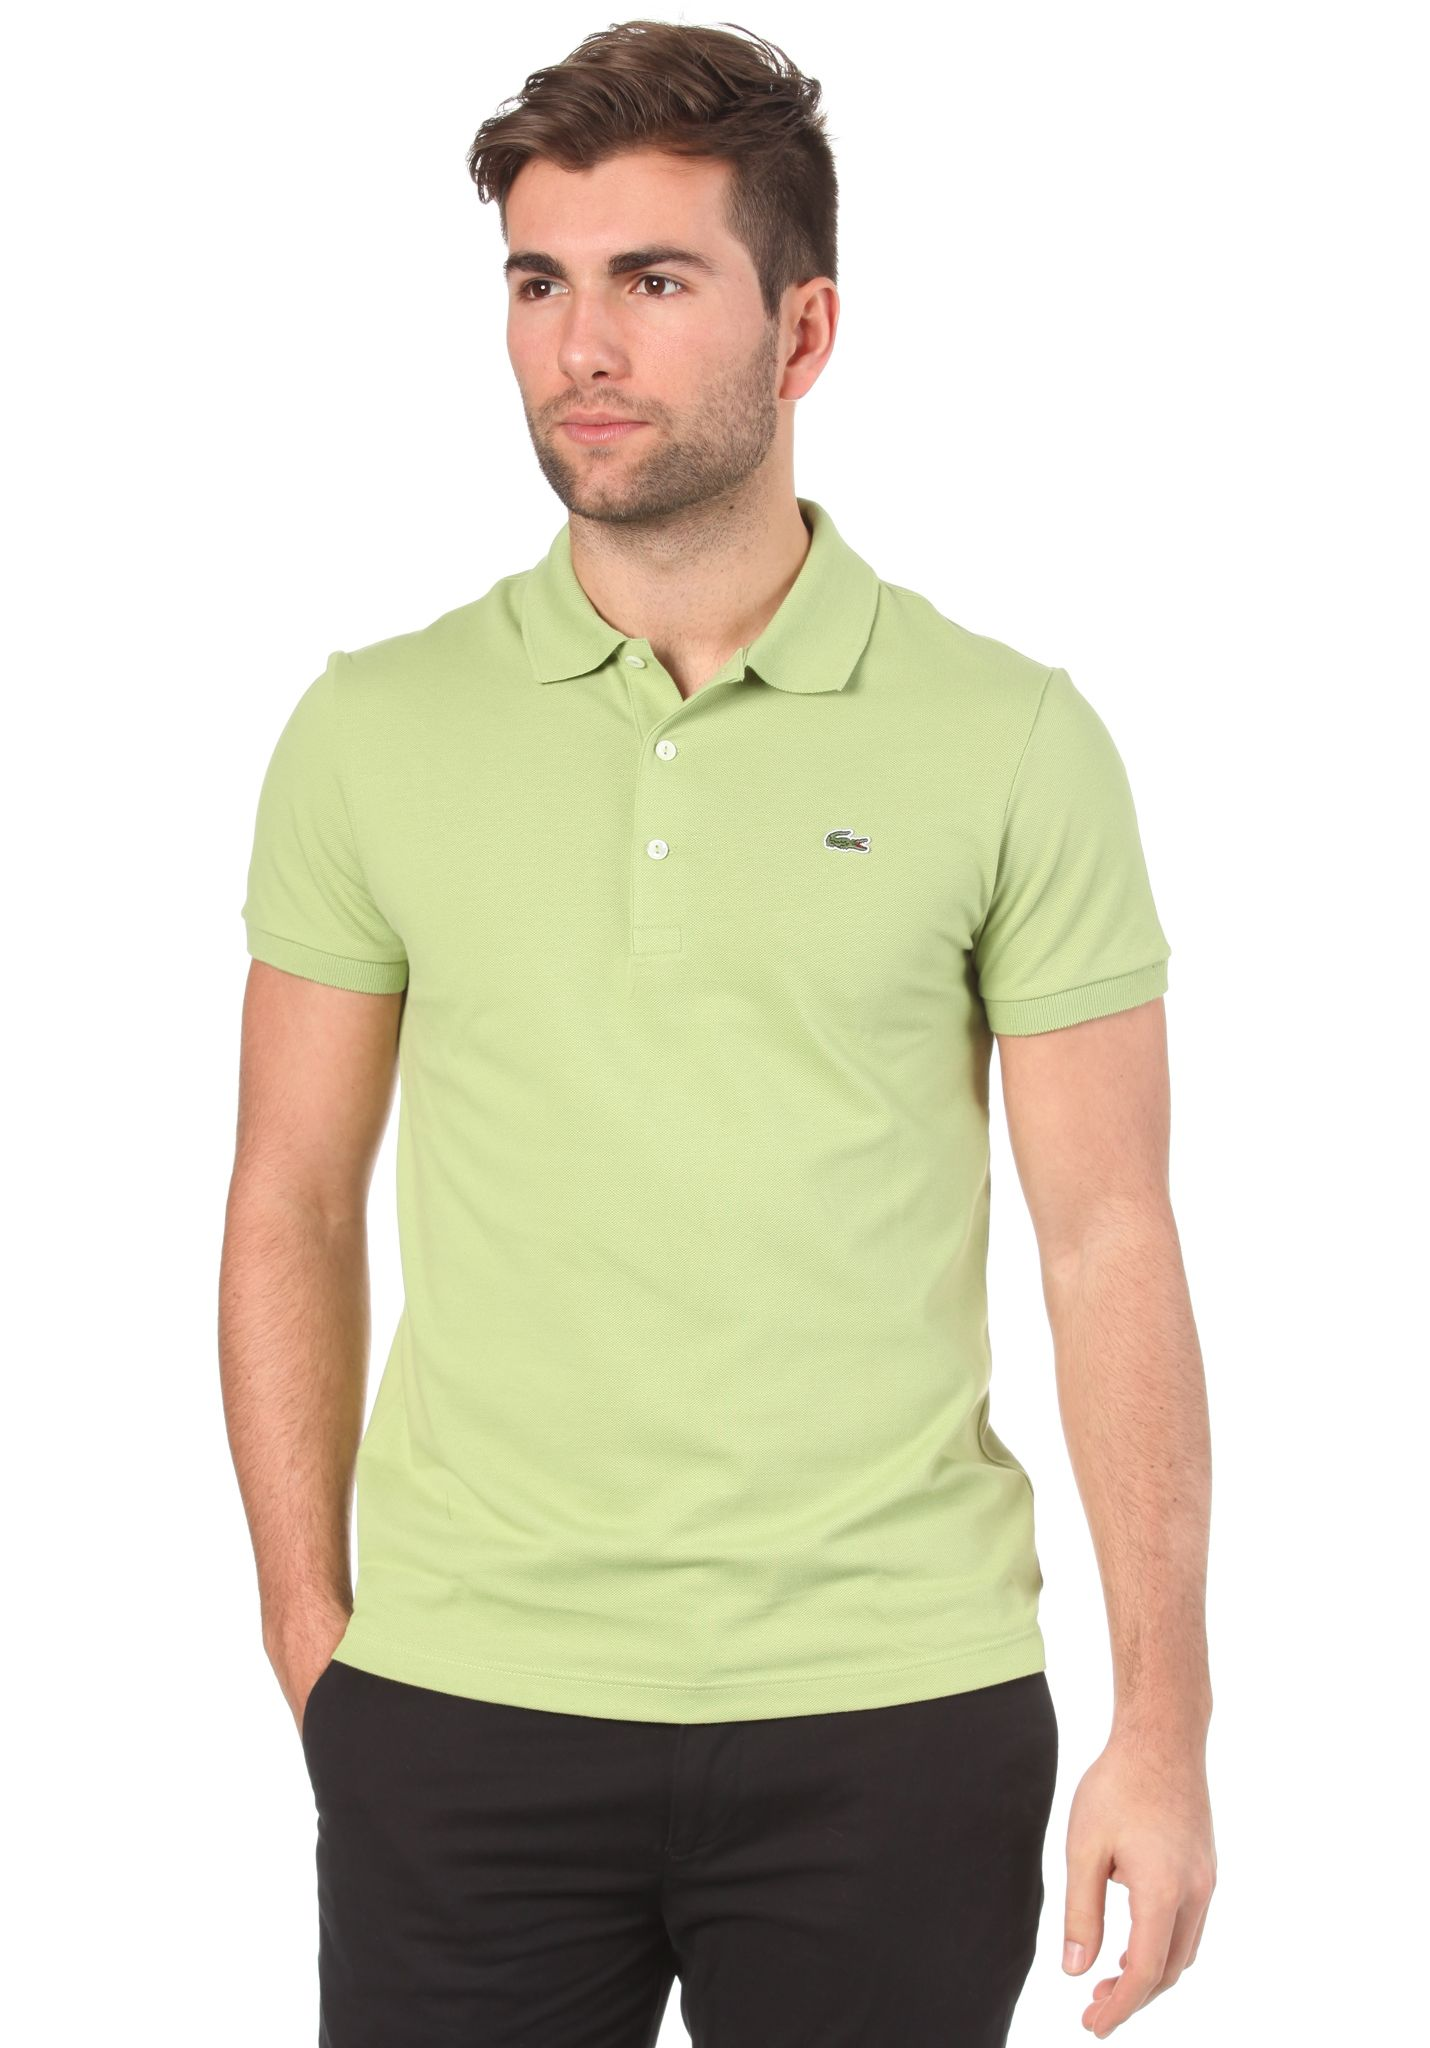 dfc8c4ac0551a Lacoste Live Slim Fit S S Polo Shirt - Polo para Hombres - Verde - Planet  Sports